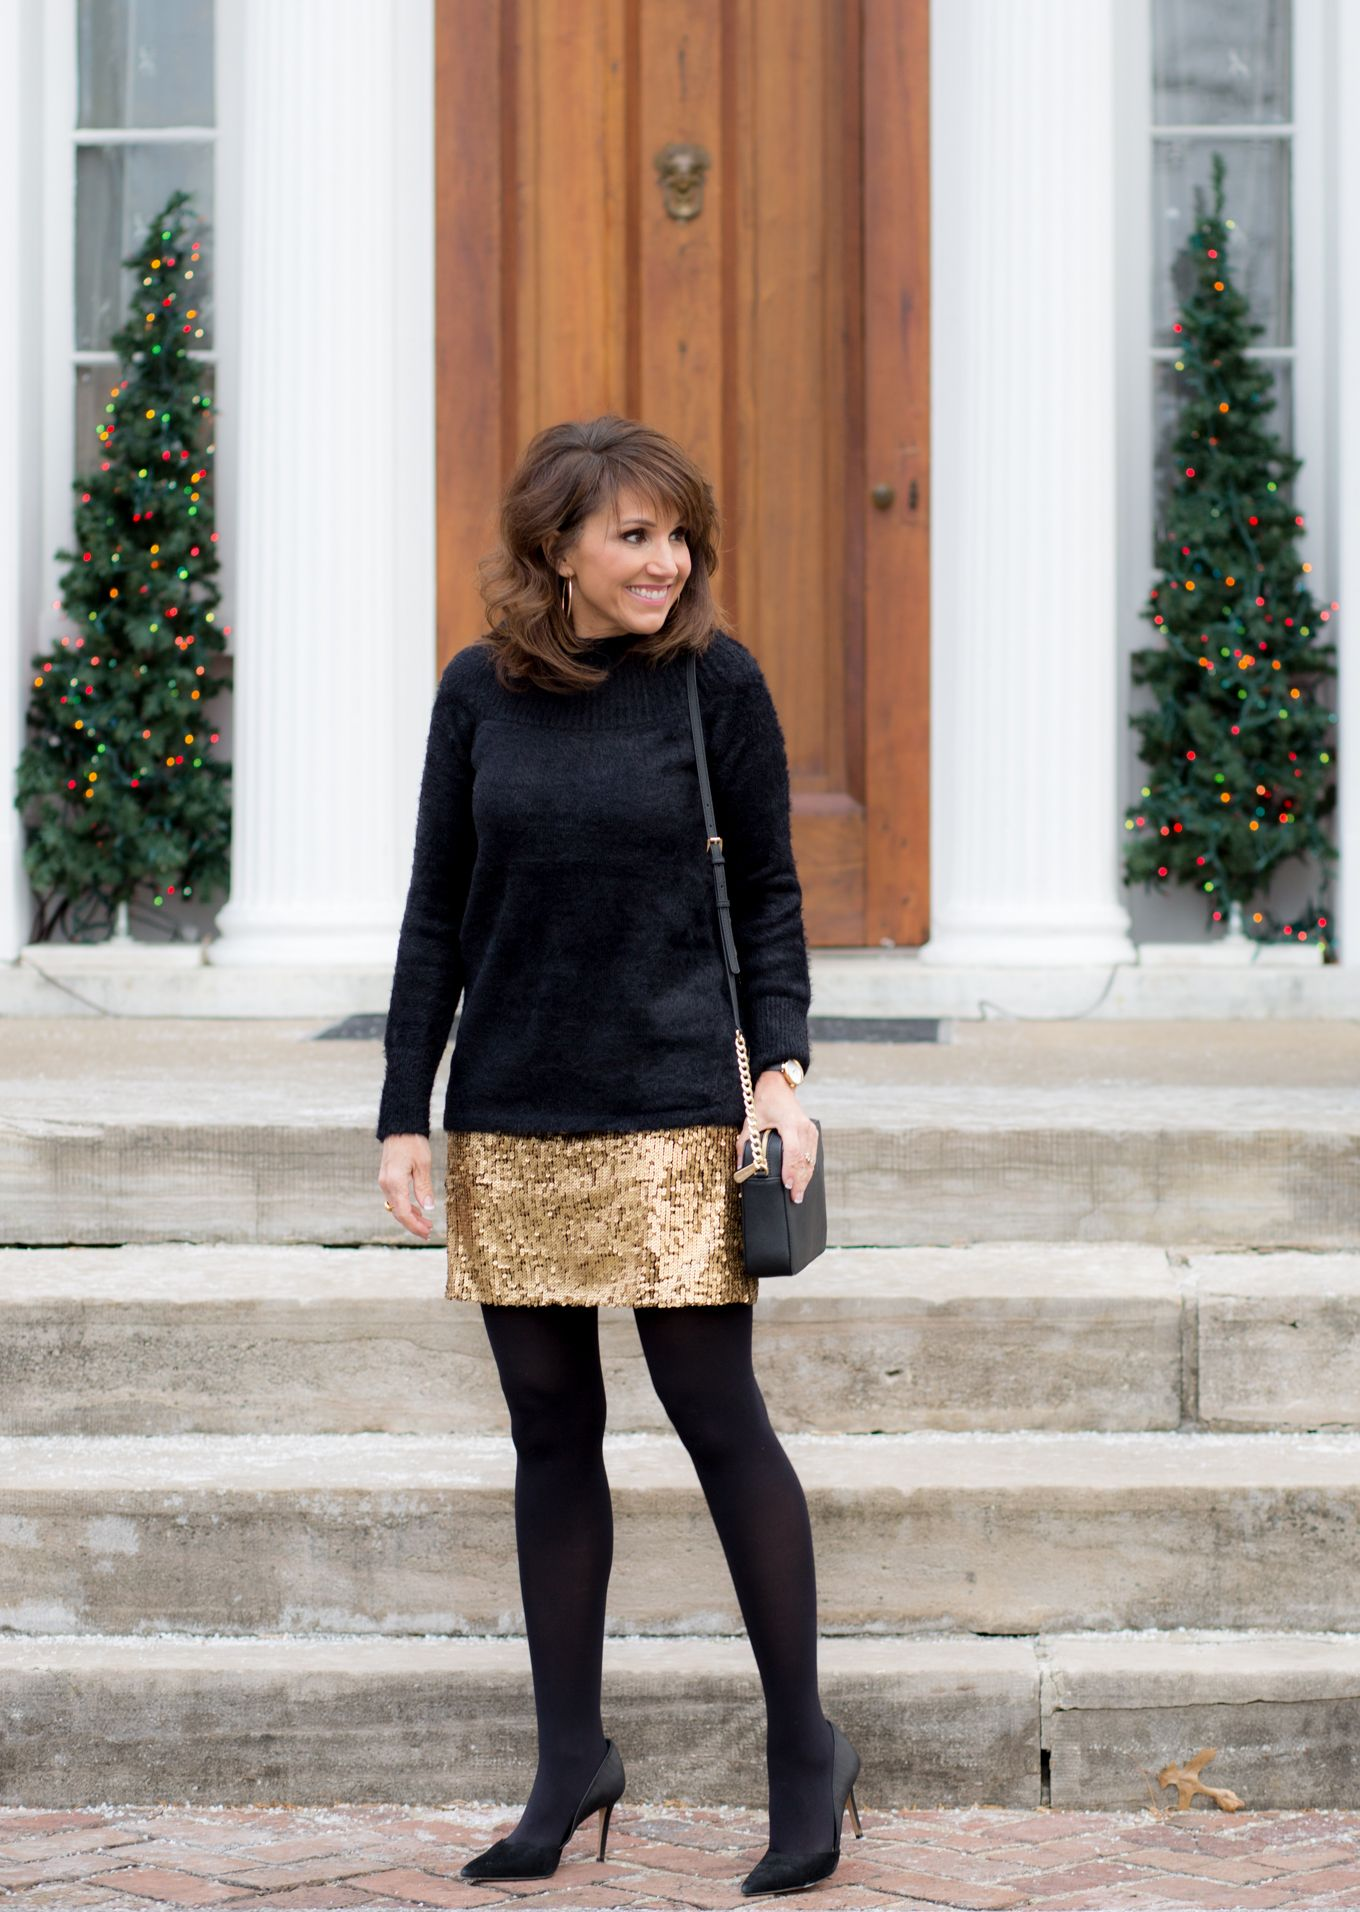 25 Days of Winter Fashion Gold Sequin Skirt under $50 - Casual christmas party outfit, Casual party outfit, Work party outfits, Christmas outfits women, Christmas party outfit casual, Christmas outfit casual - I love dressing up during the holiday season and is there anything better than gold sequins  My sequin skirt fits truetosize and is less than $50